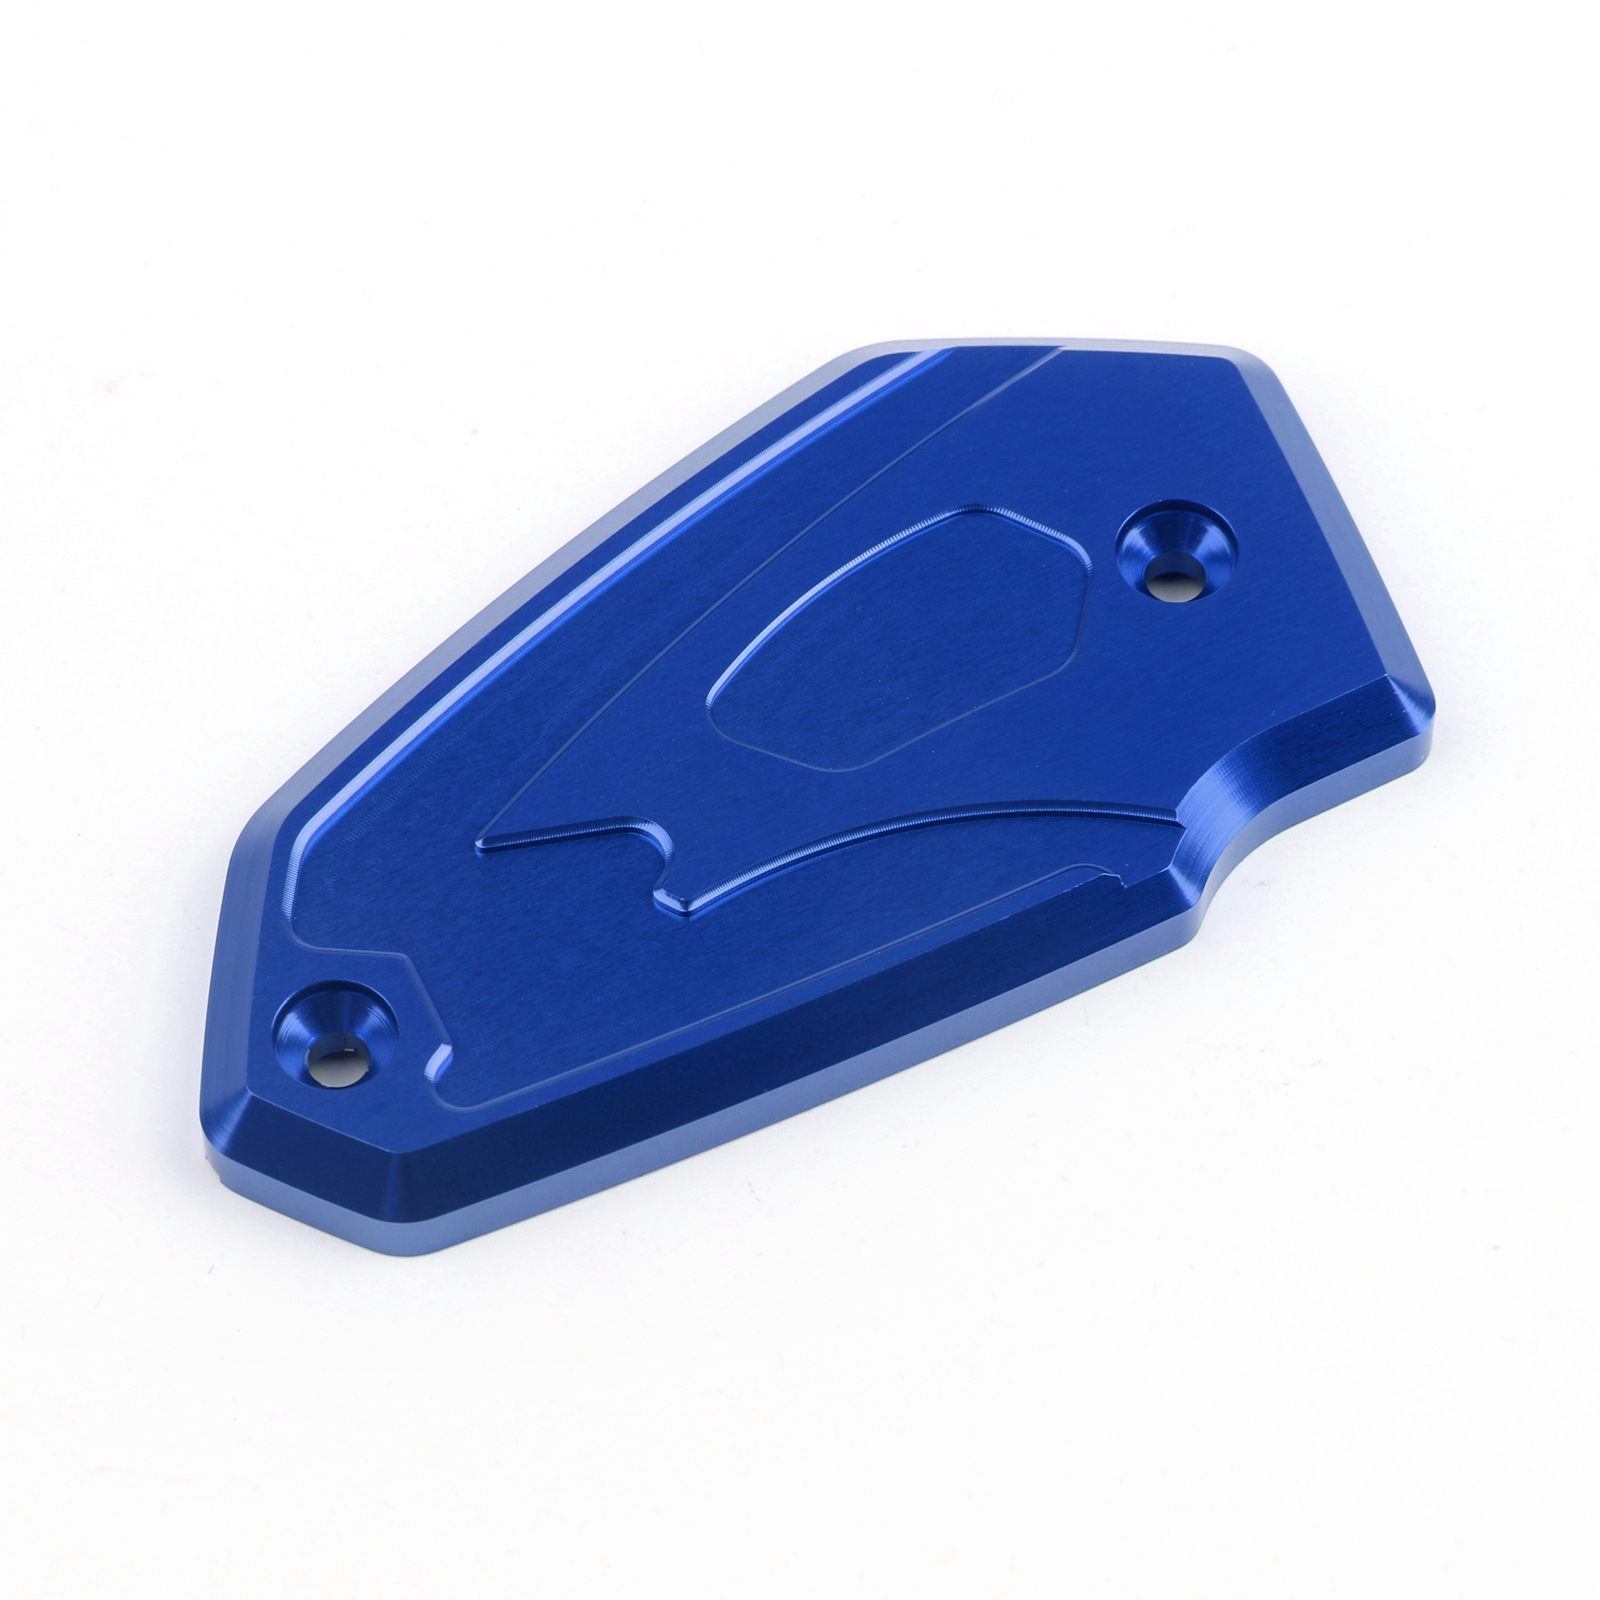 Brake Reservoir Covers : Front brake reservoir cover for kawasaki er f n